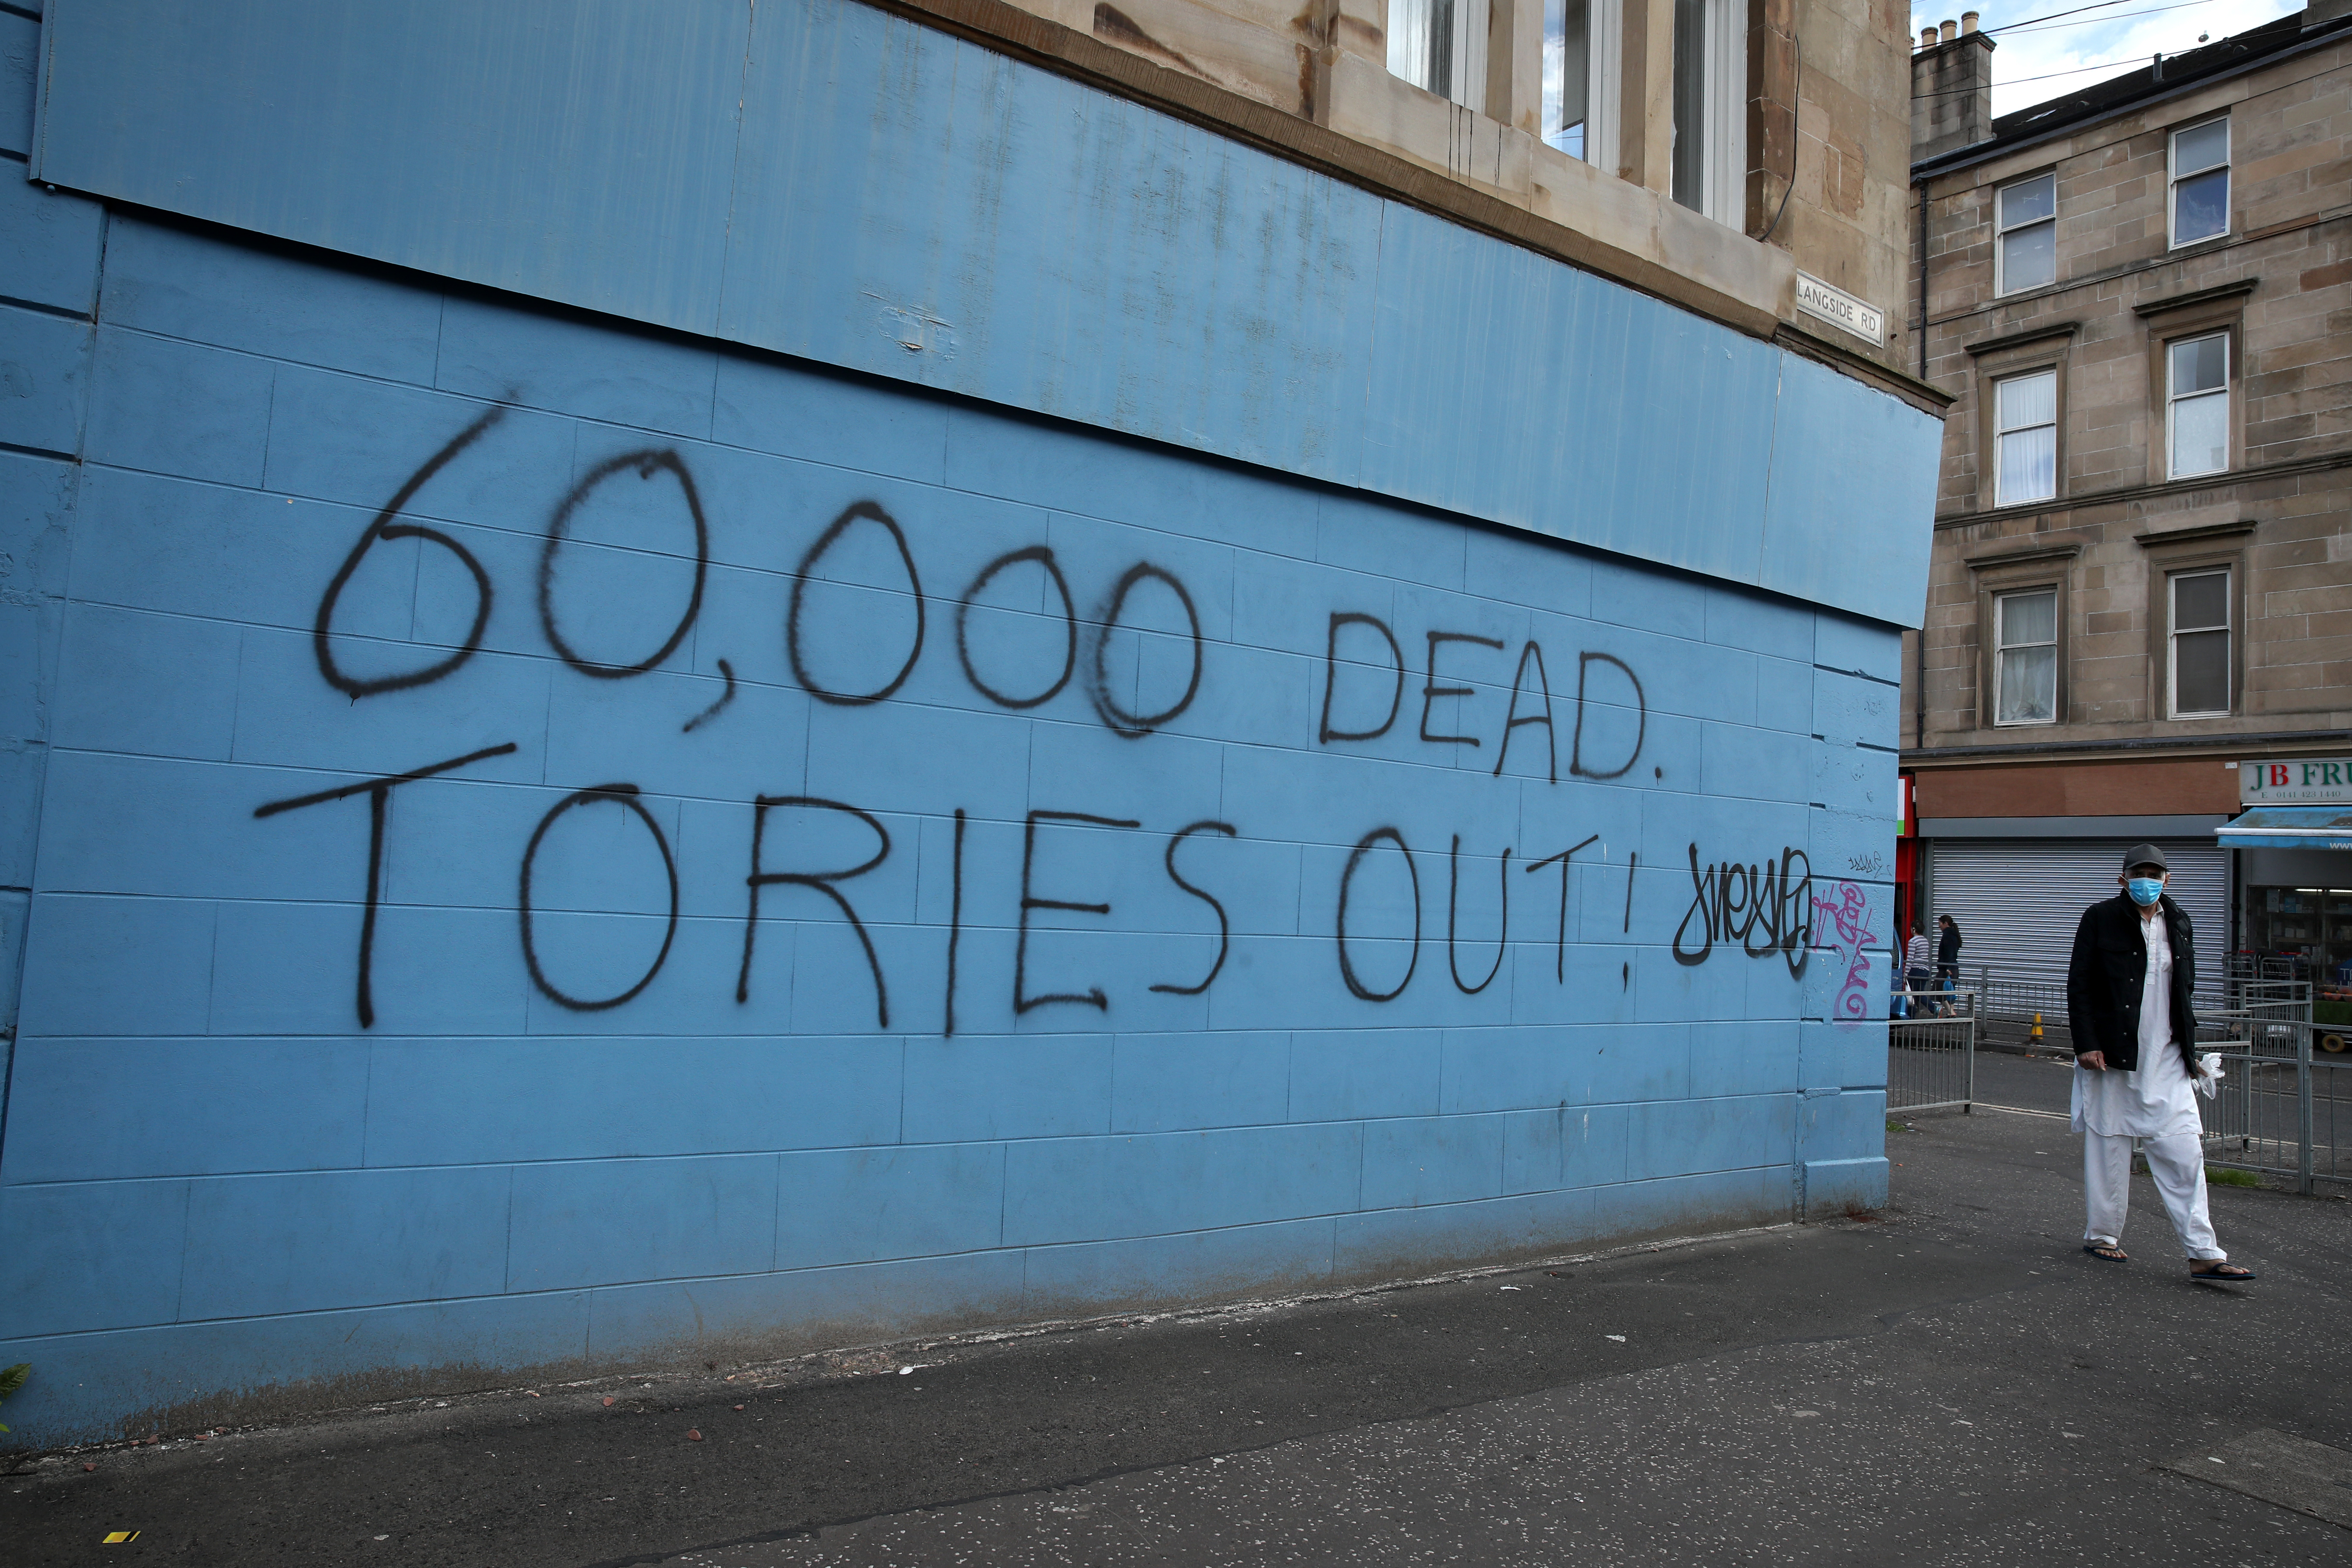 A person passes coronavirus related graffiti in Glasgow as Scotland is moving into phase one of the Scottish Government's plan for gradually lifting lockdown. (Photo by Andrew Milligan/PA Images via Getty Images)